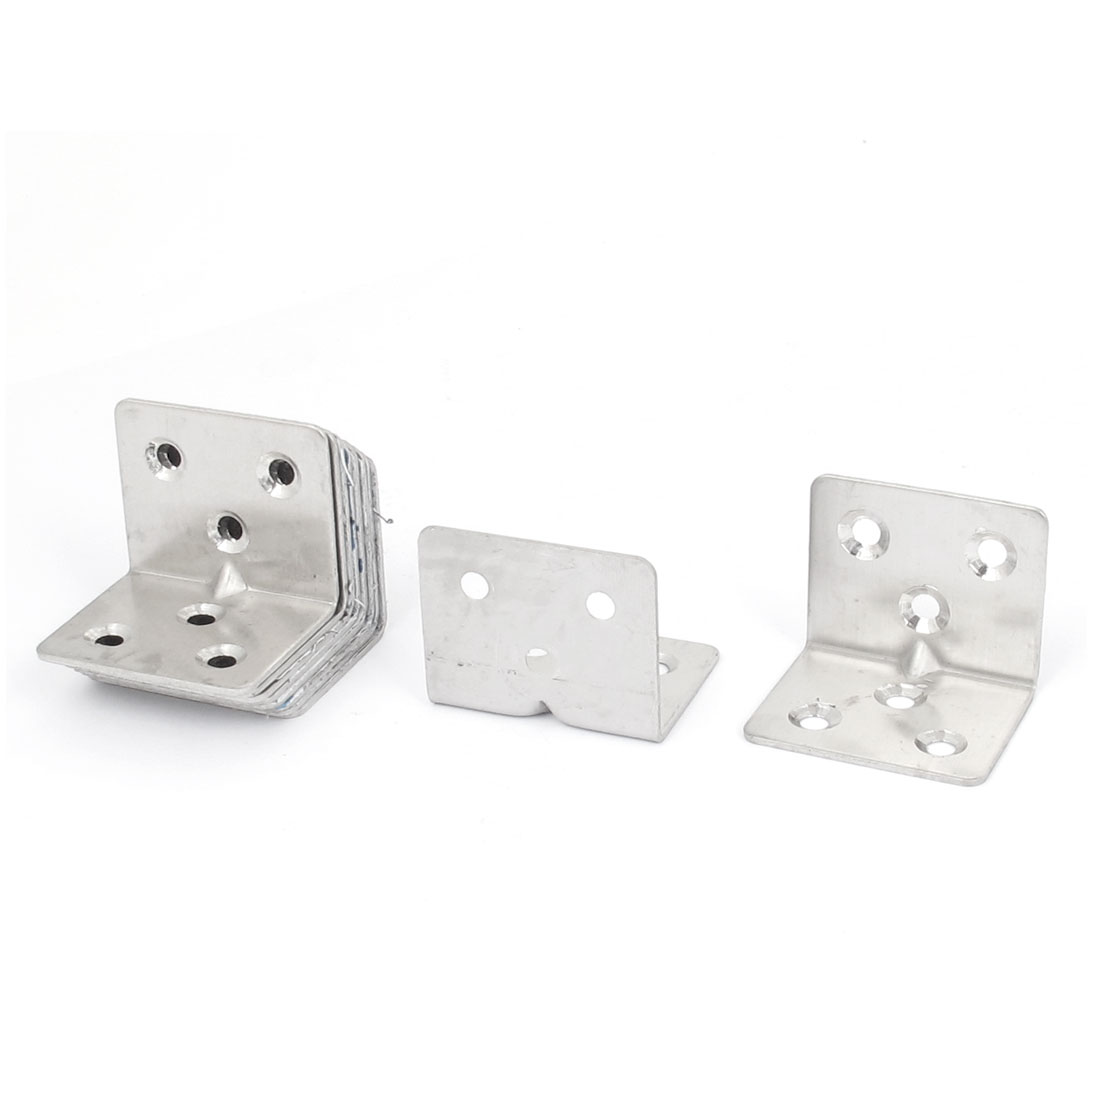 30mmx30mmx38mm L Shape Corner Brace Repair Right Angle Bracket Shelf Support 10pcs